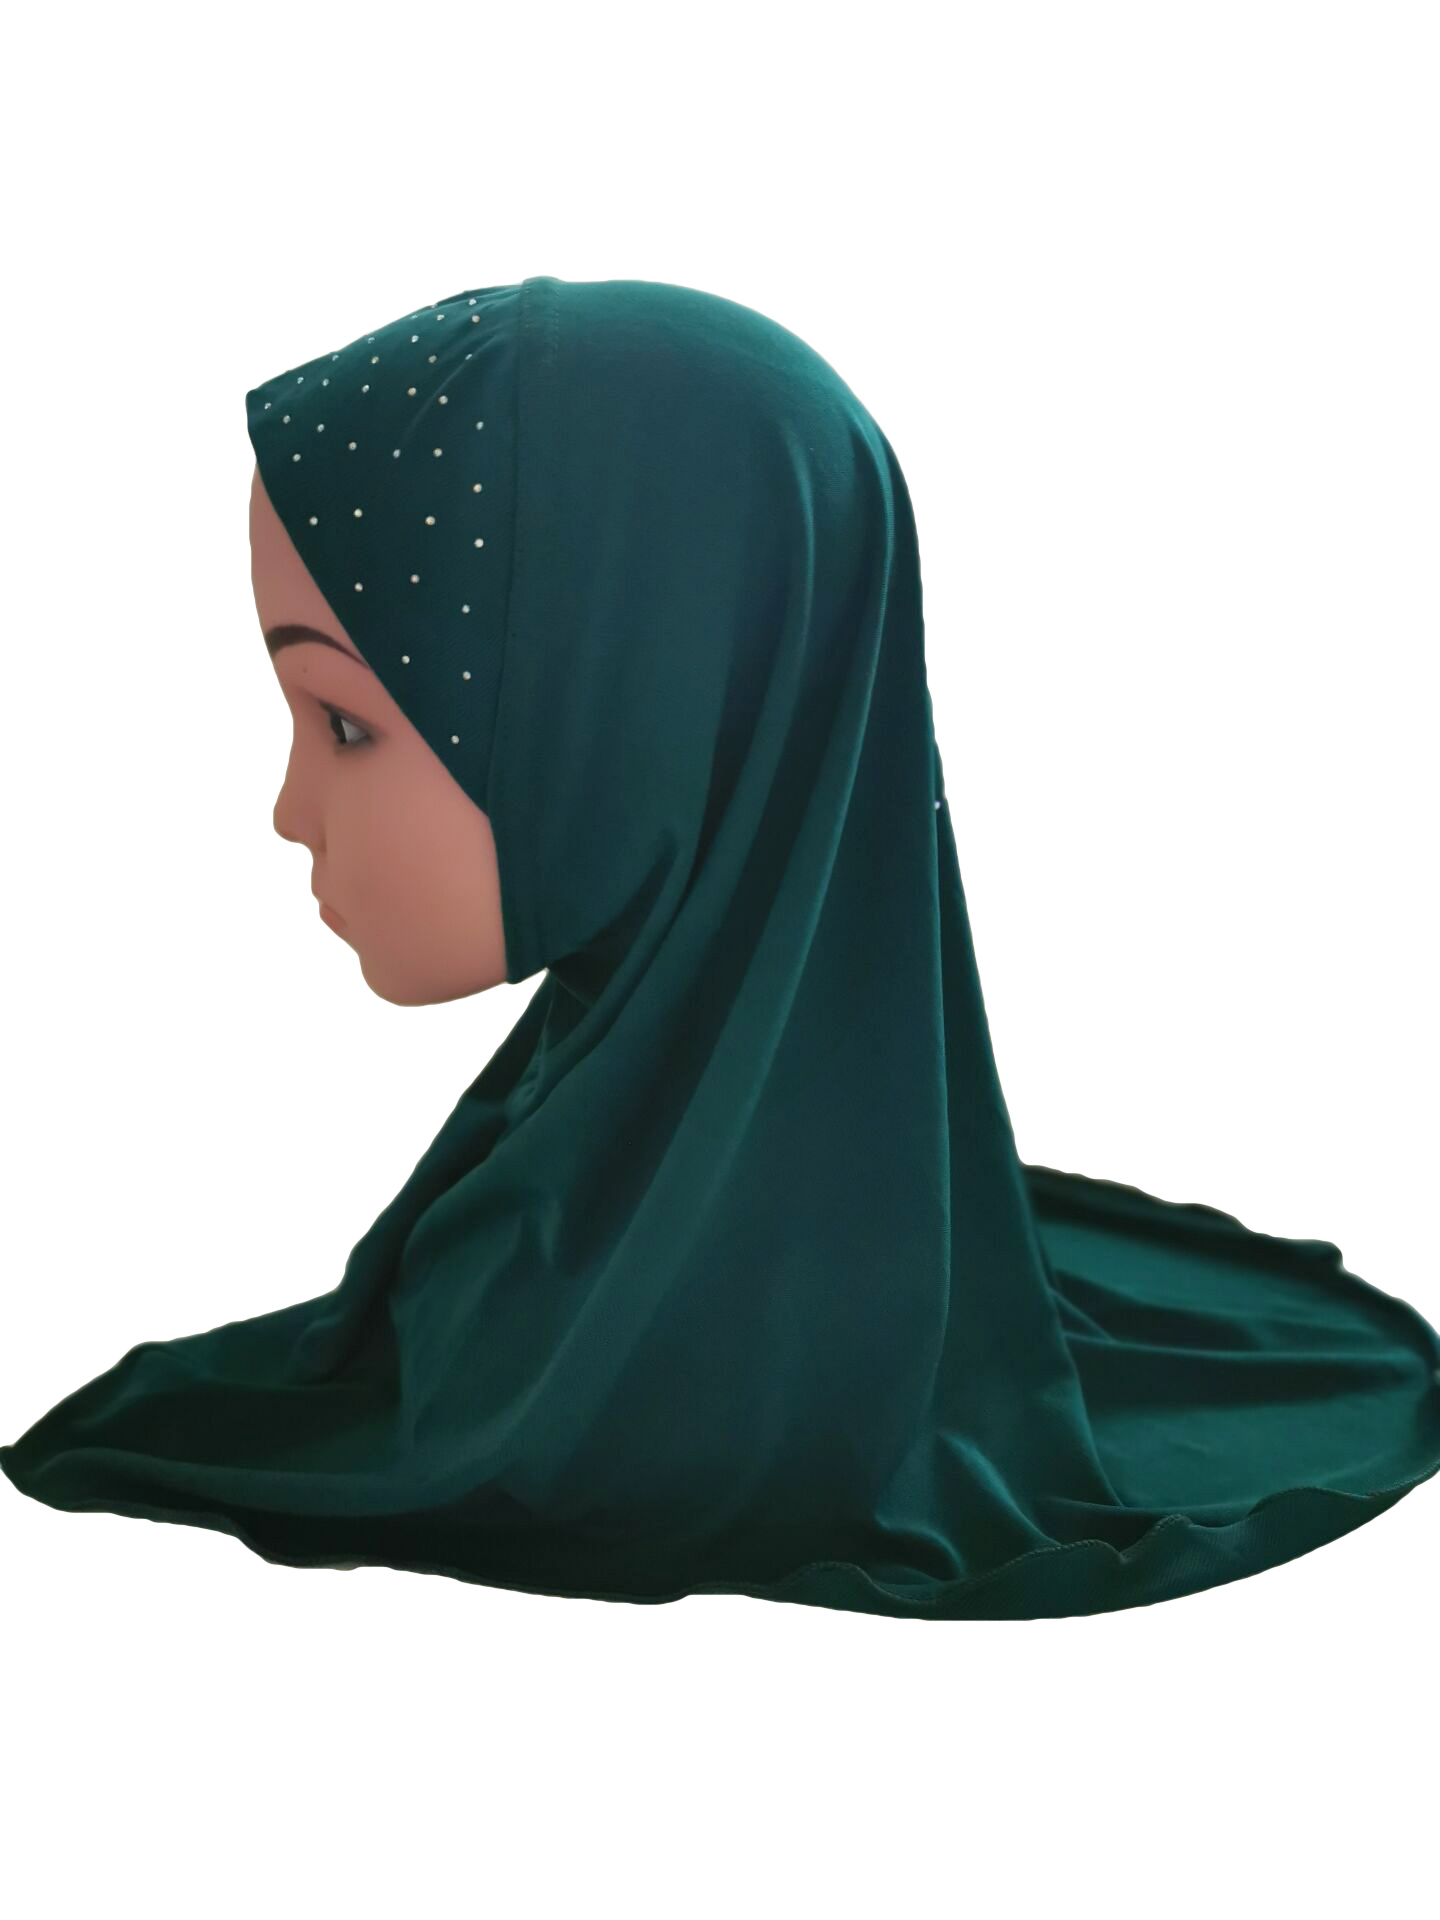 Girls-Kids-Muslim-Hijab-Hats-Islamic-Arab-Scarf-Caps-Shawls-Amira-Headwear-3-8Y thumbnail 95